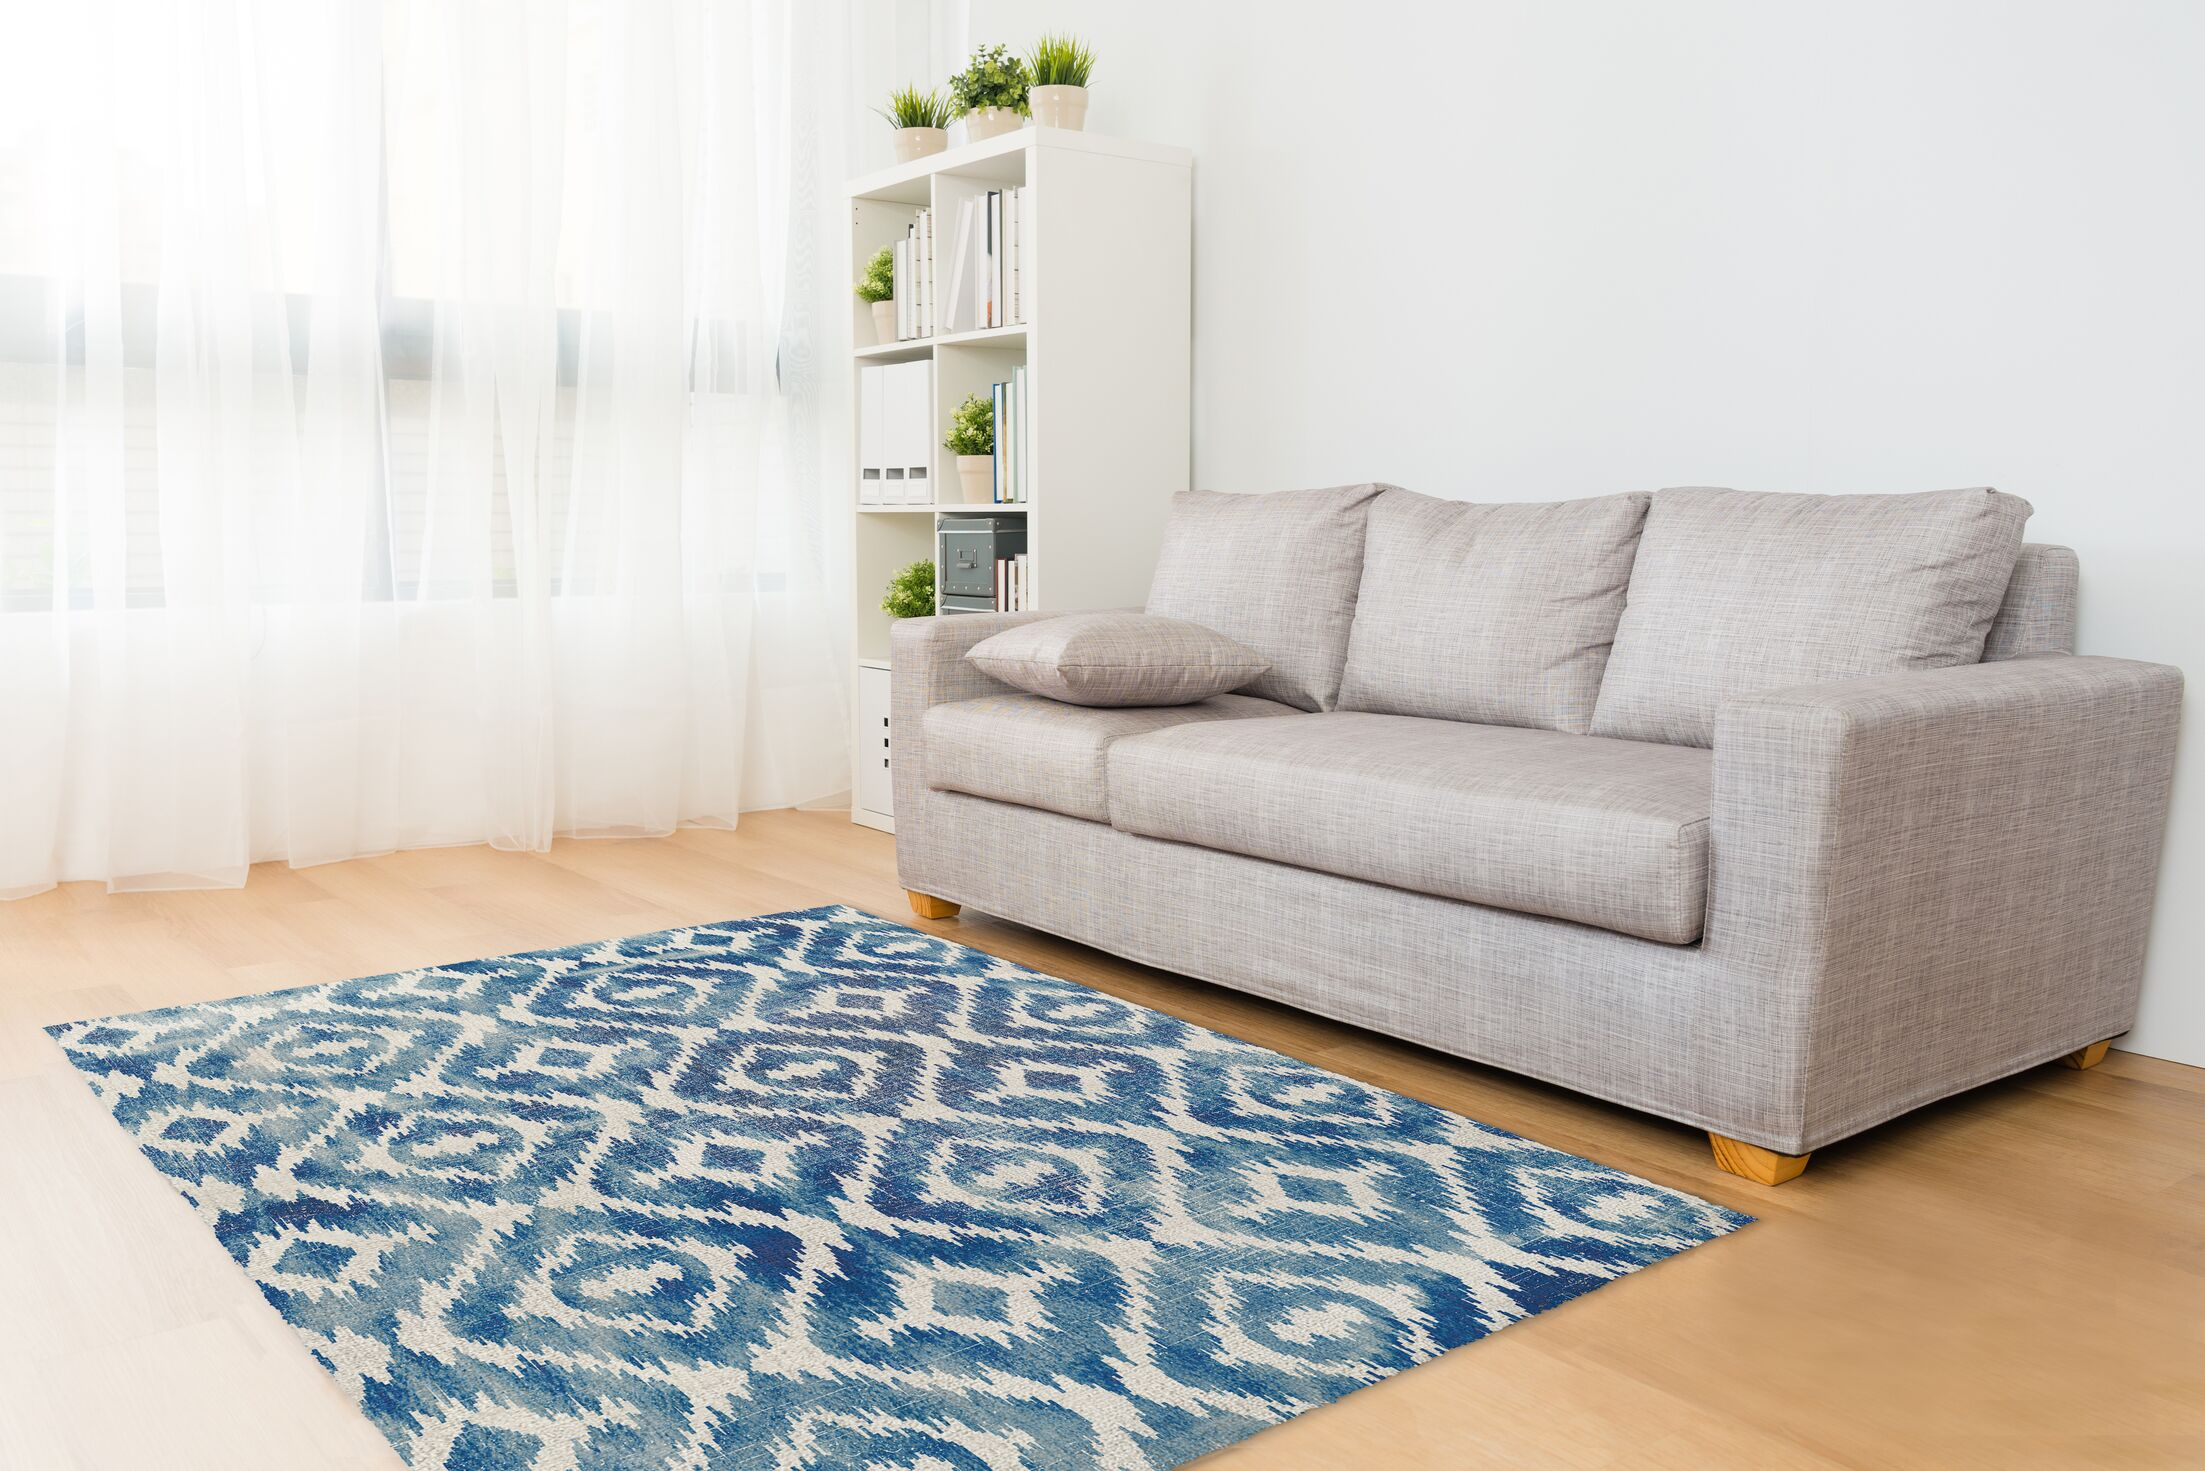 Laplant Blue Area Rug Rug Size: 3' x 5'